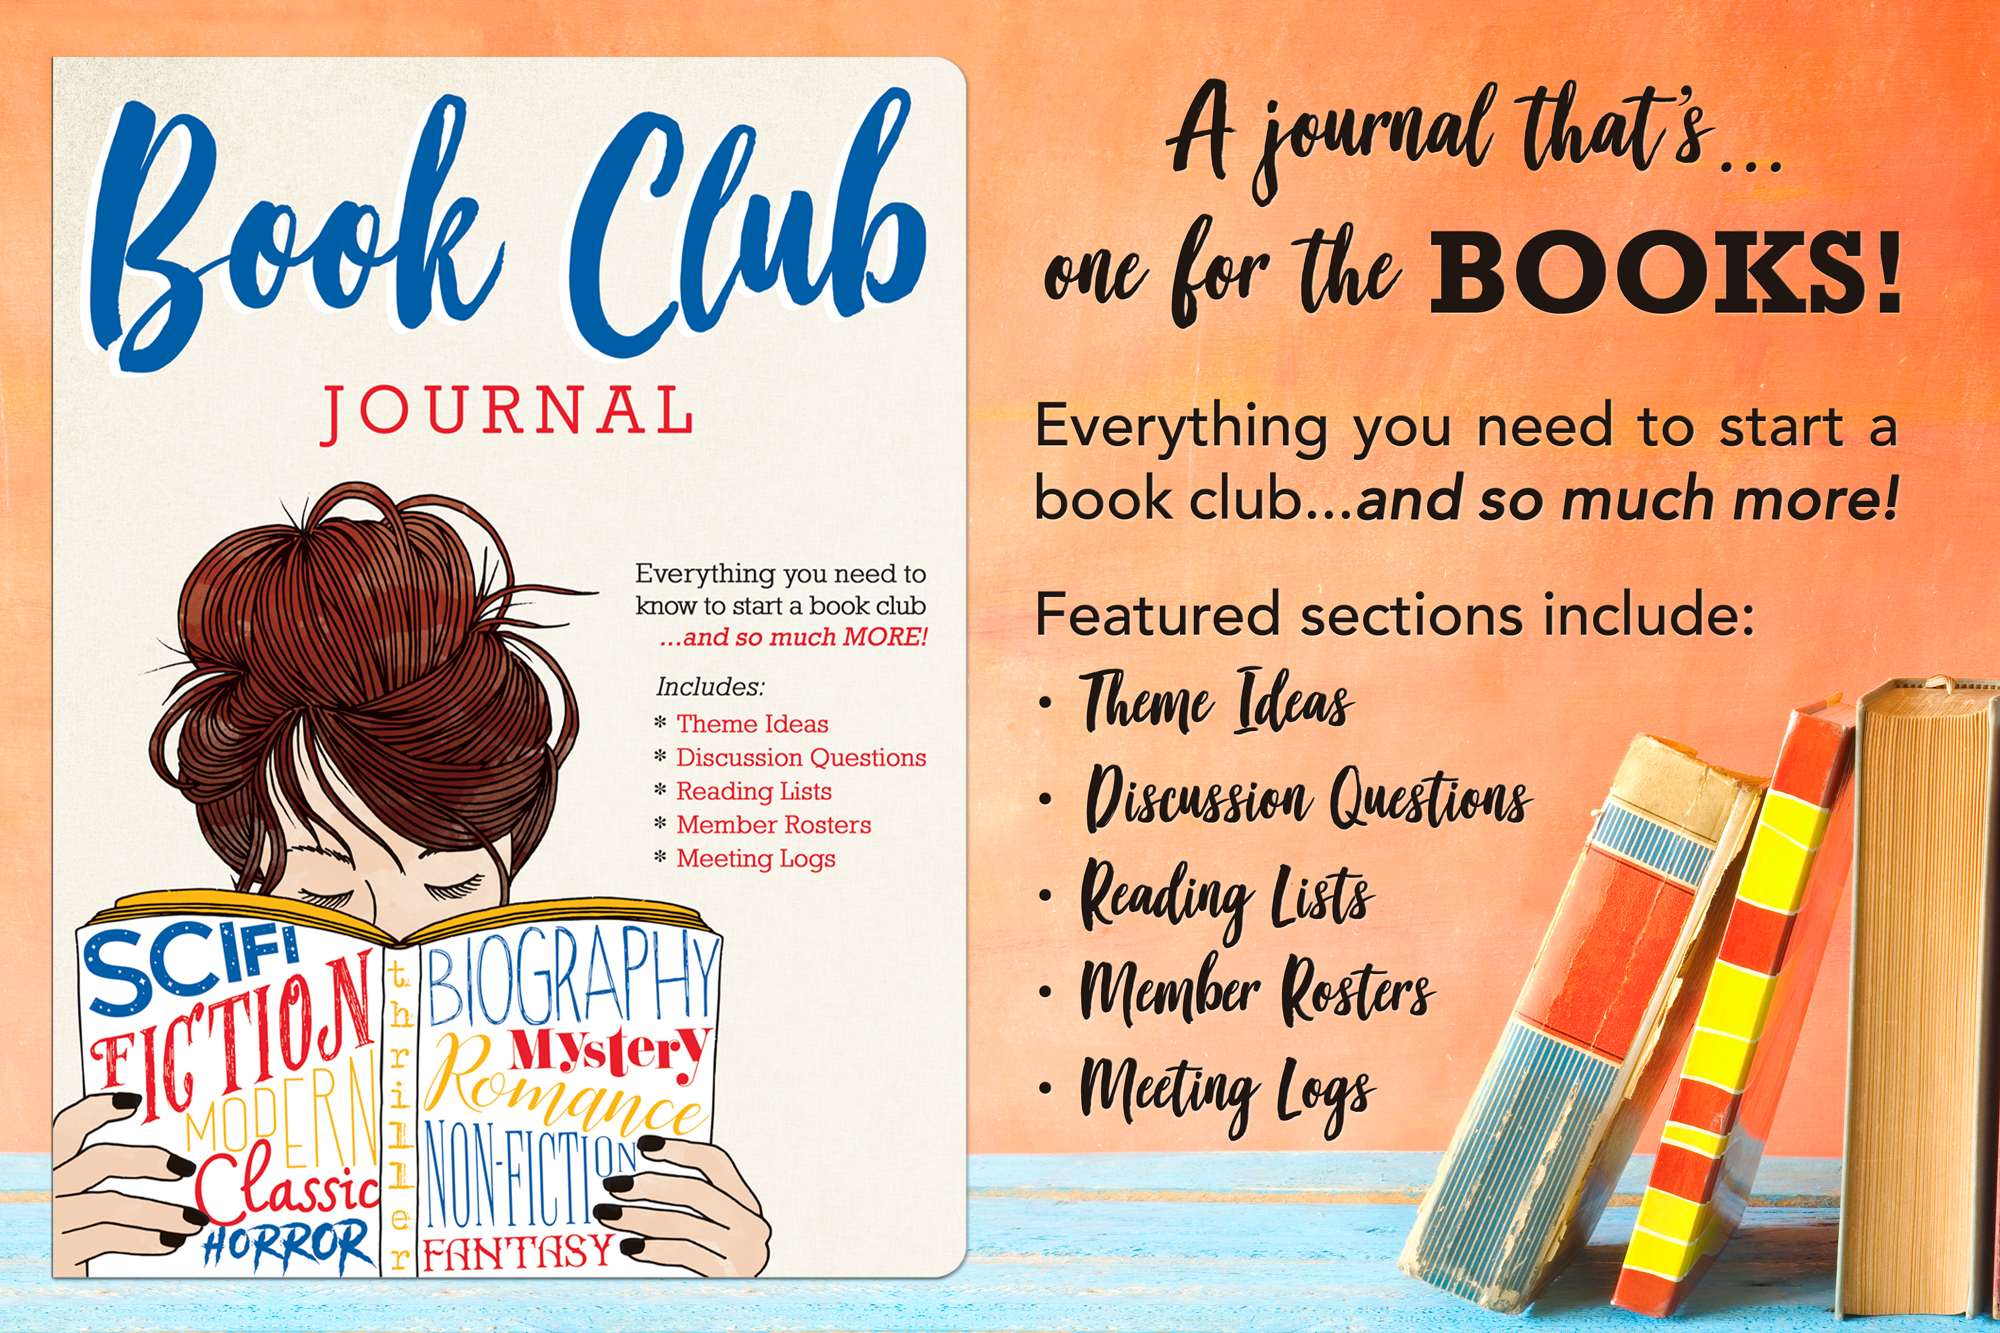 Book Club Journal graphic